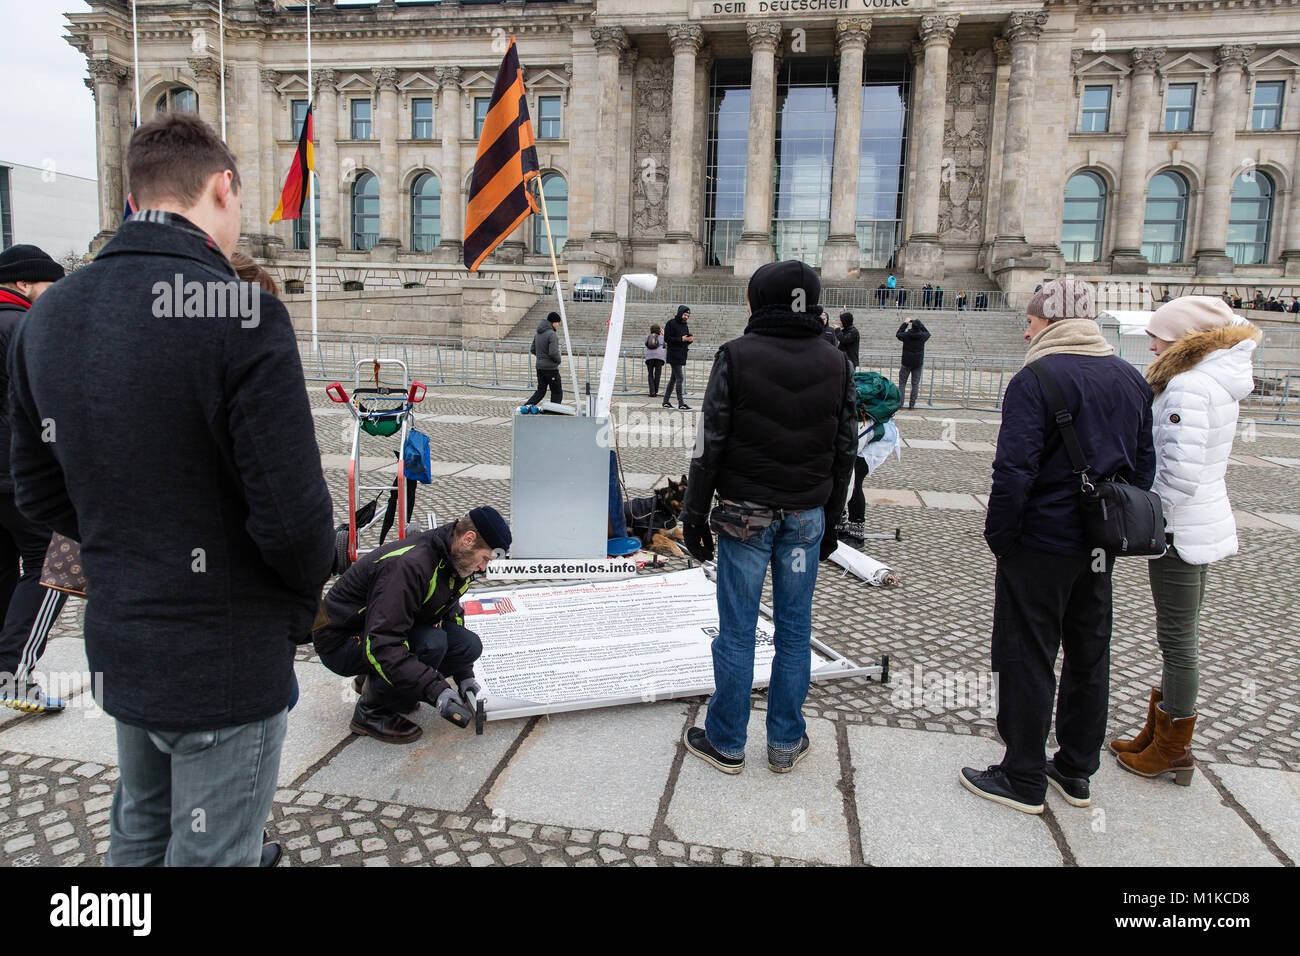 Activist in Berlin in front of the Reichstag Building setting up a picketing stand getting tourists attention. Stock Photo